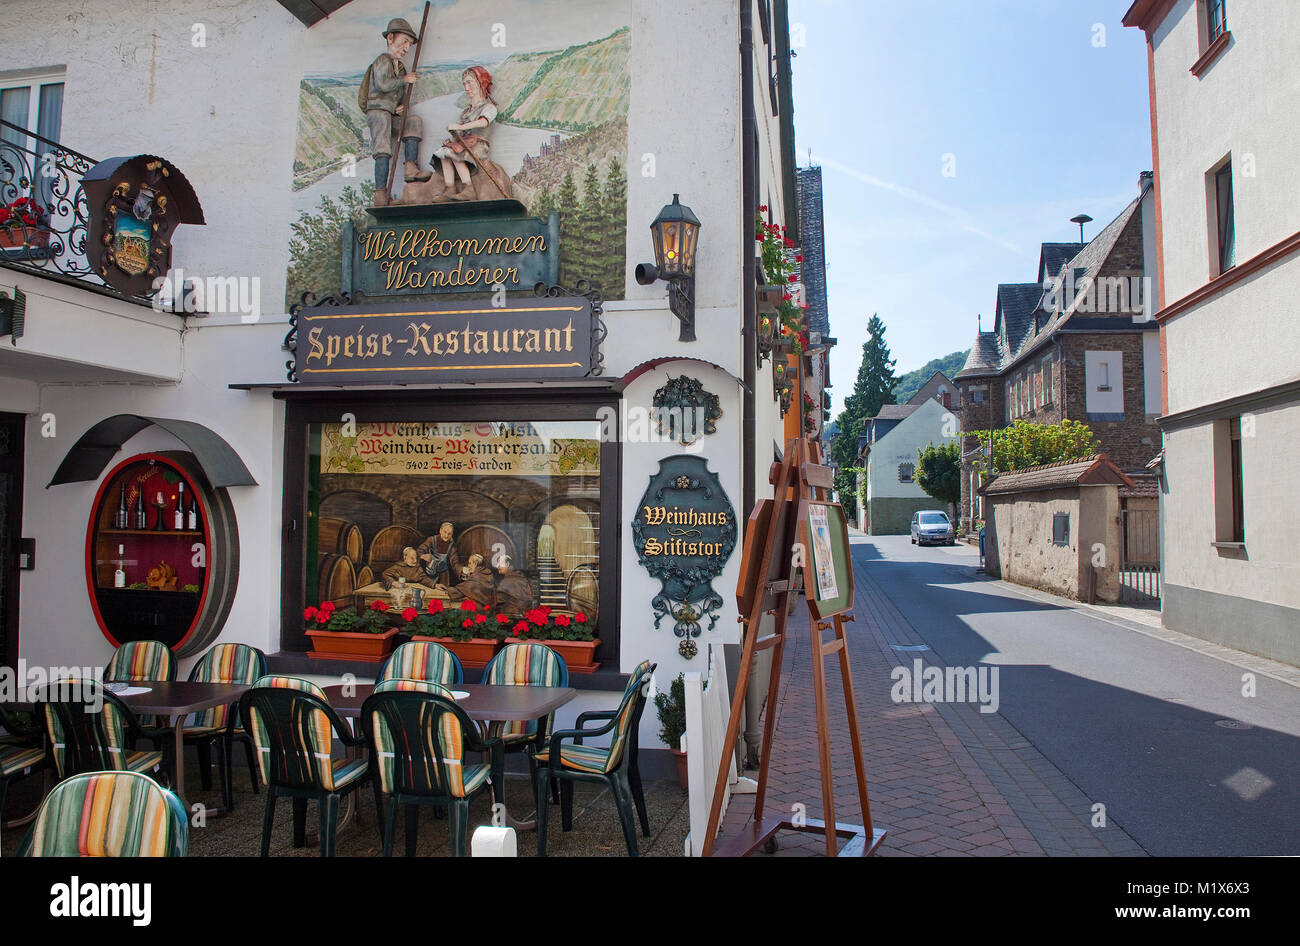 Wine tavern Stiftstor, Treis-Karden, Moselle river, Rhineland-Palatinate, Germany, Europe Stock Photo